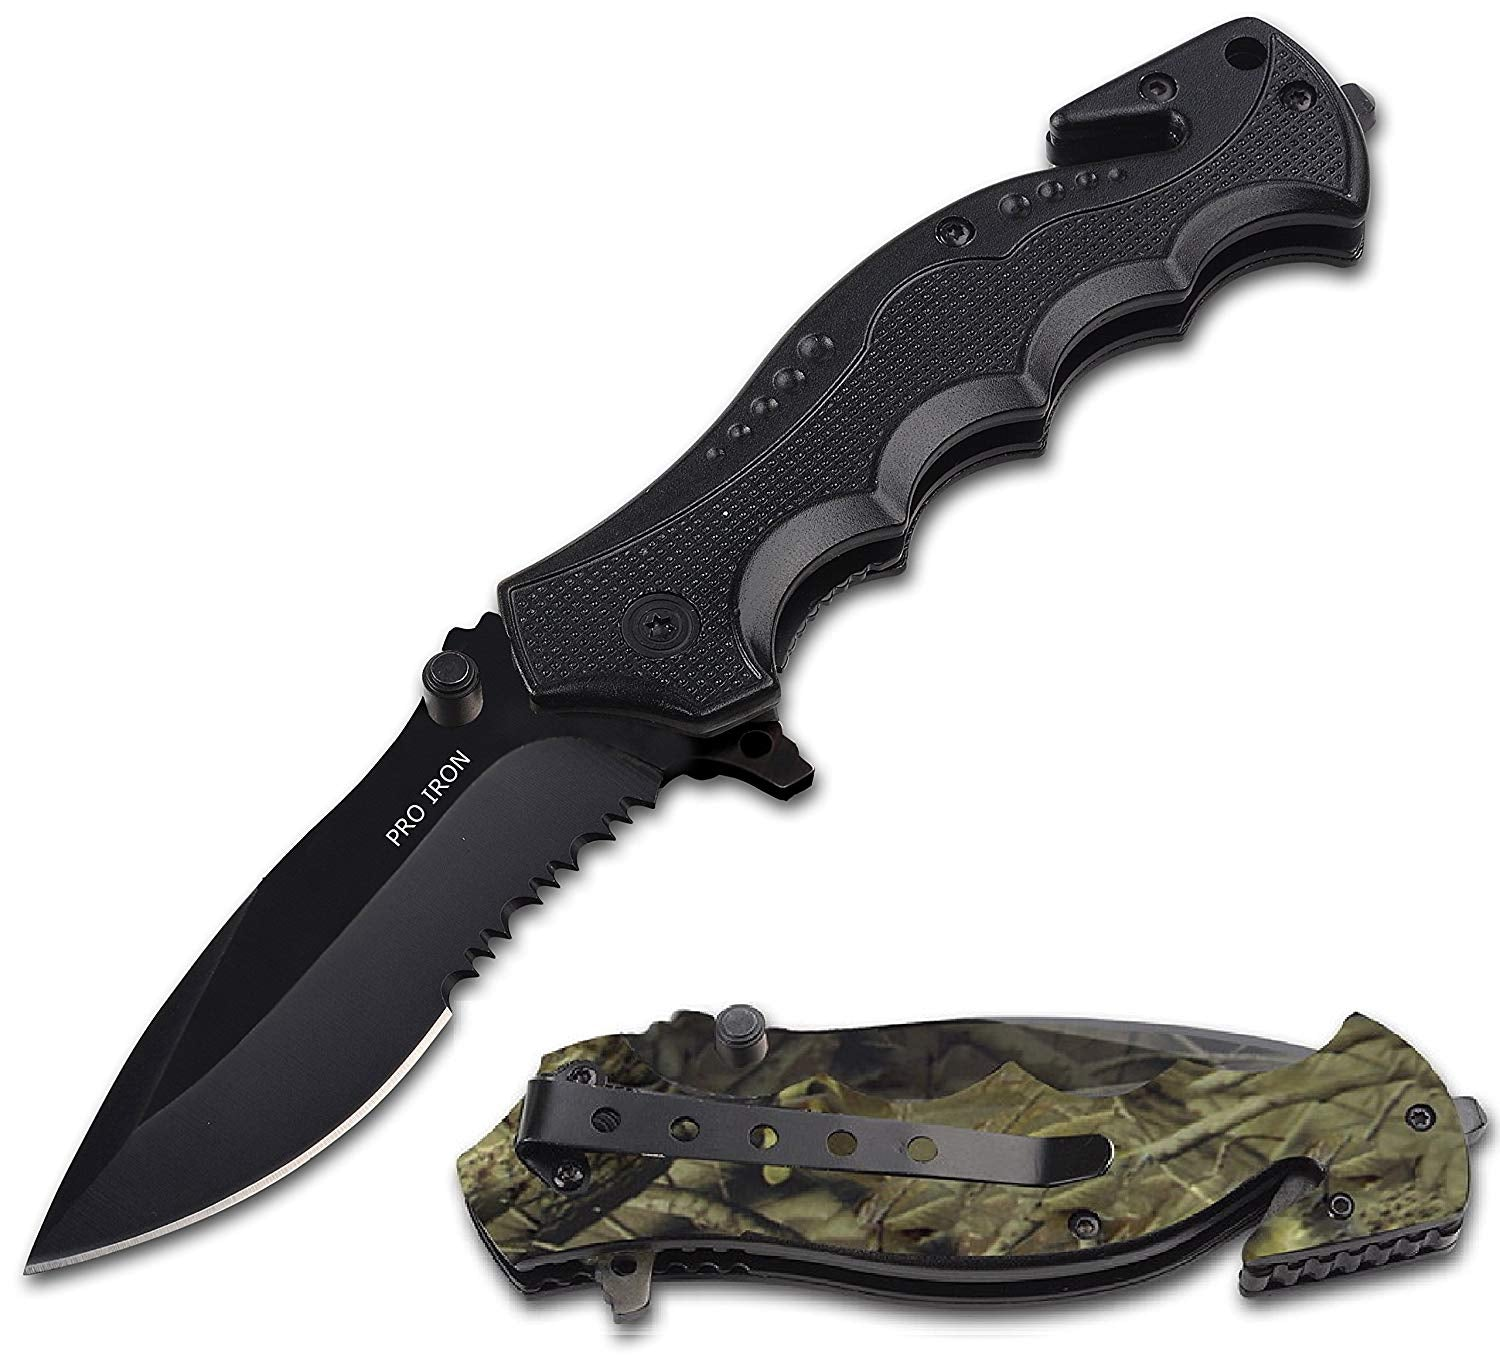 Serrated Edge Outdoor Survival Camping Hunting Knife - 2 Knives - Woodsman-Camo + Black